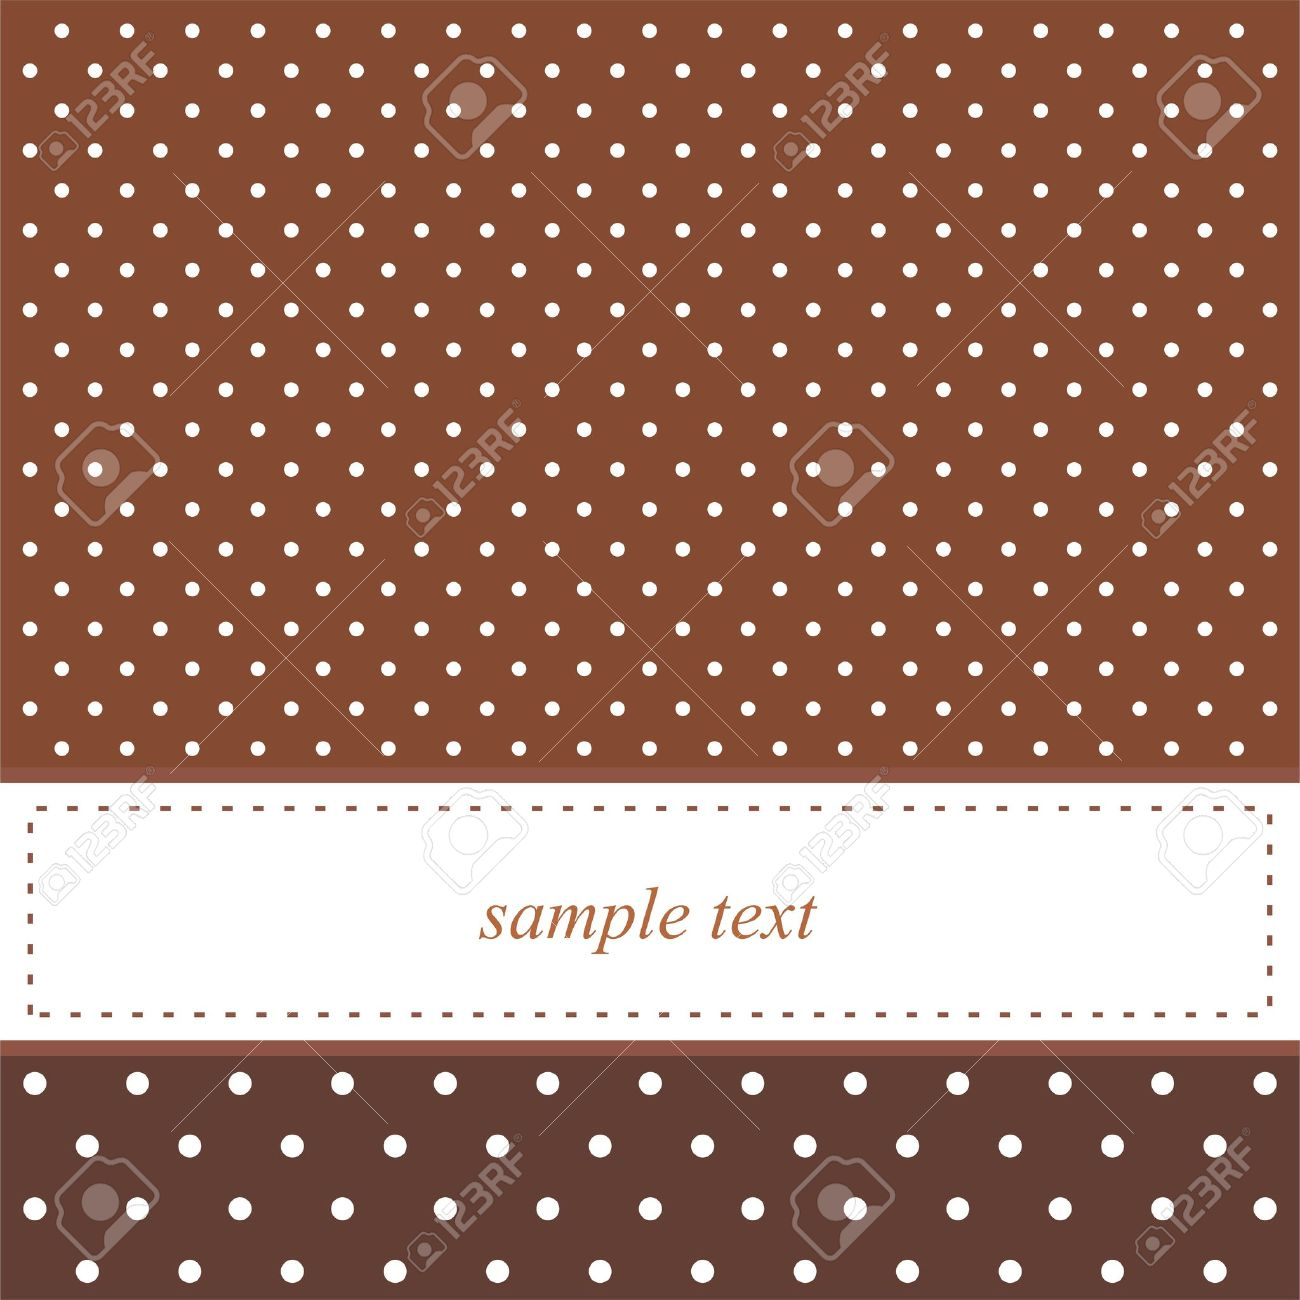 Brown Background With White Polka Dots